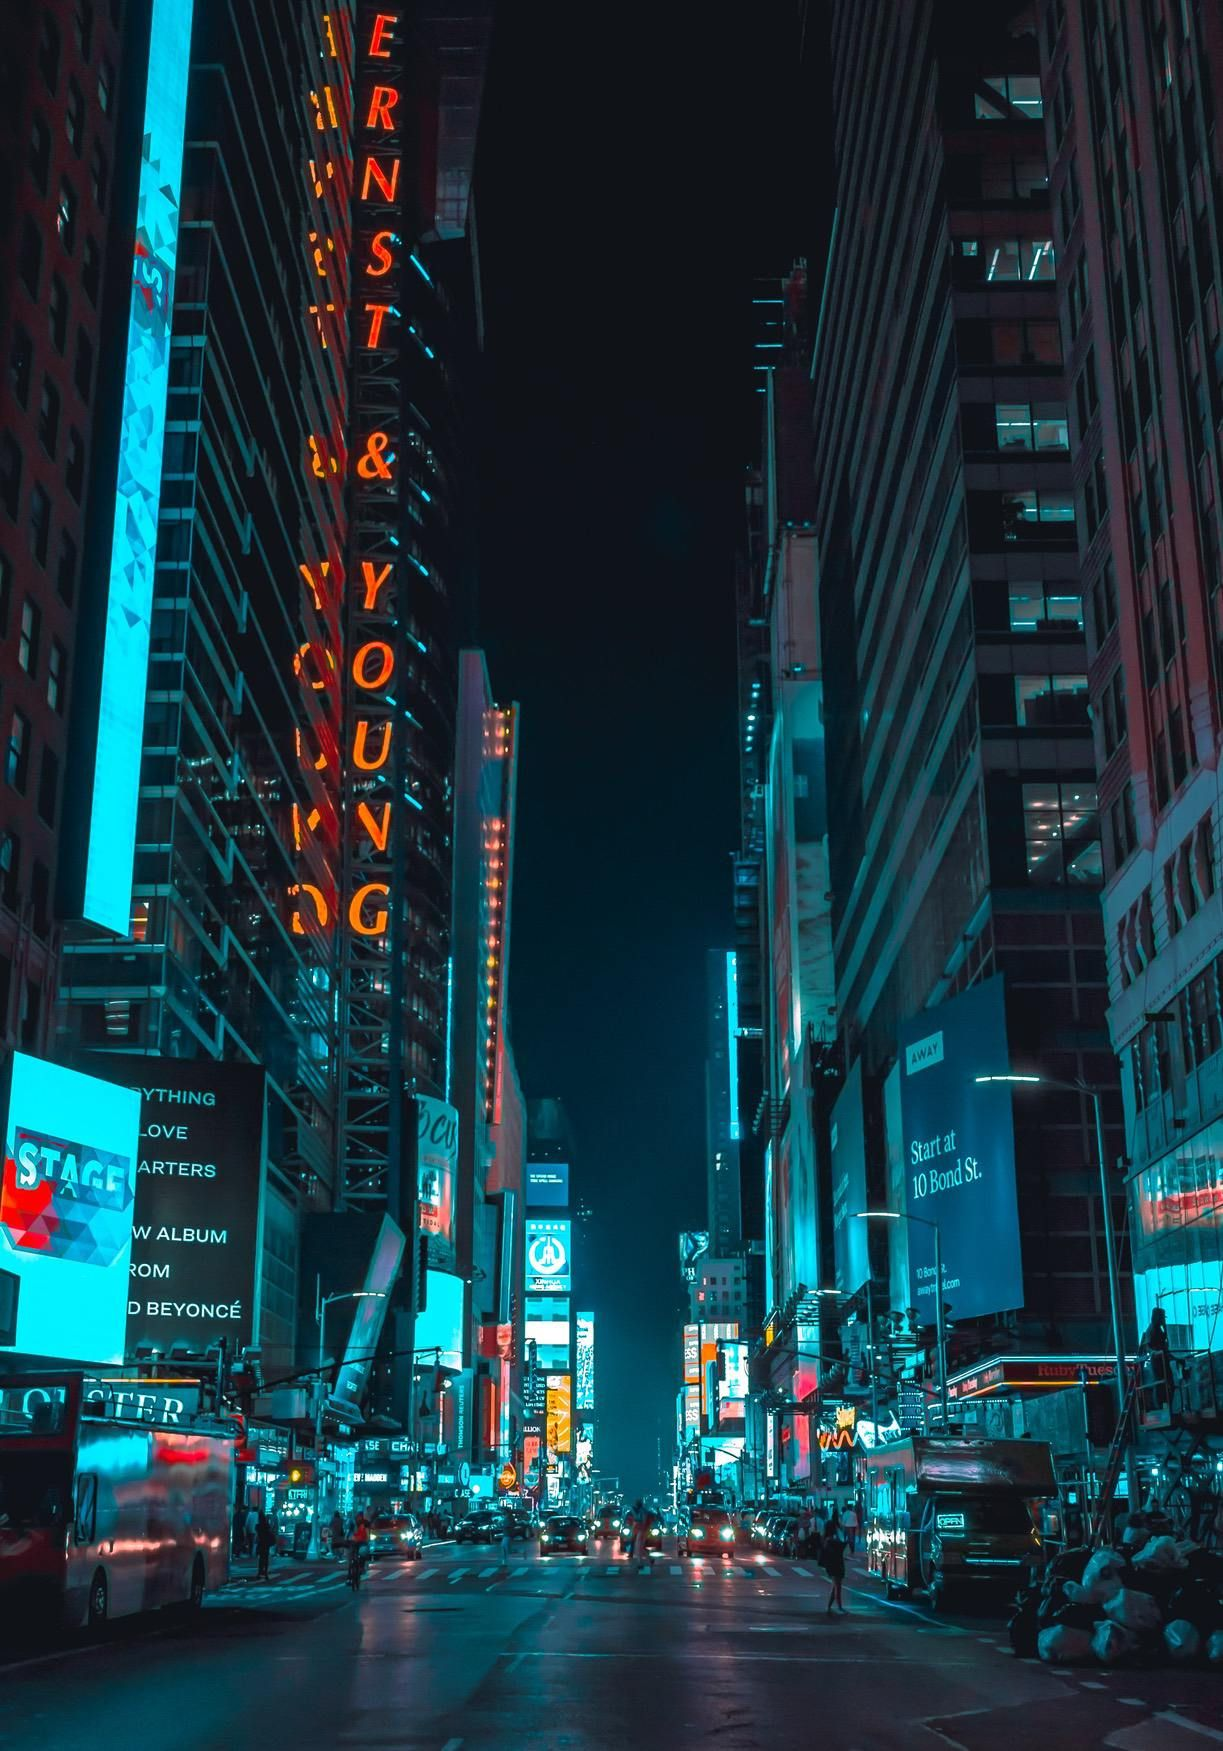 50 Free Trendy Neon Wallpapers For Iphone Hd Download City Lights Wallpaper Neon Wallpaper City Lights At Night